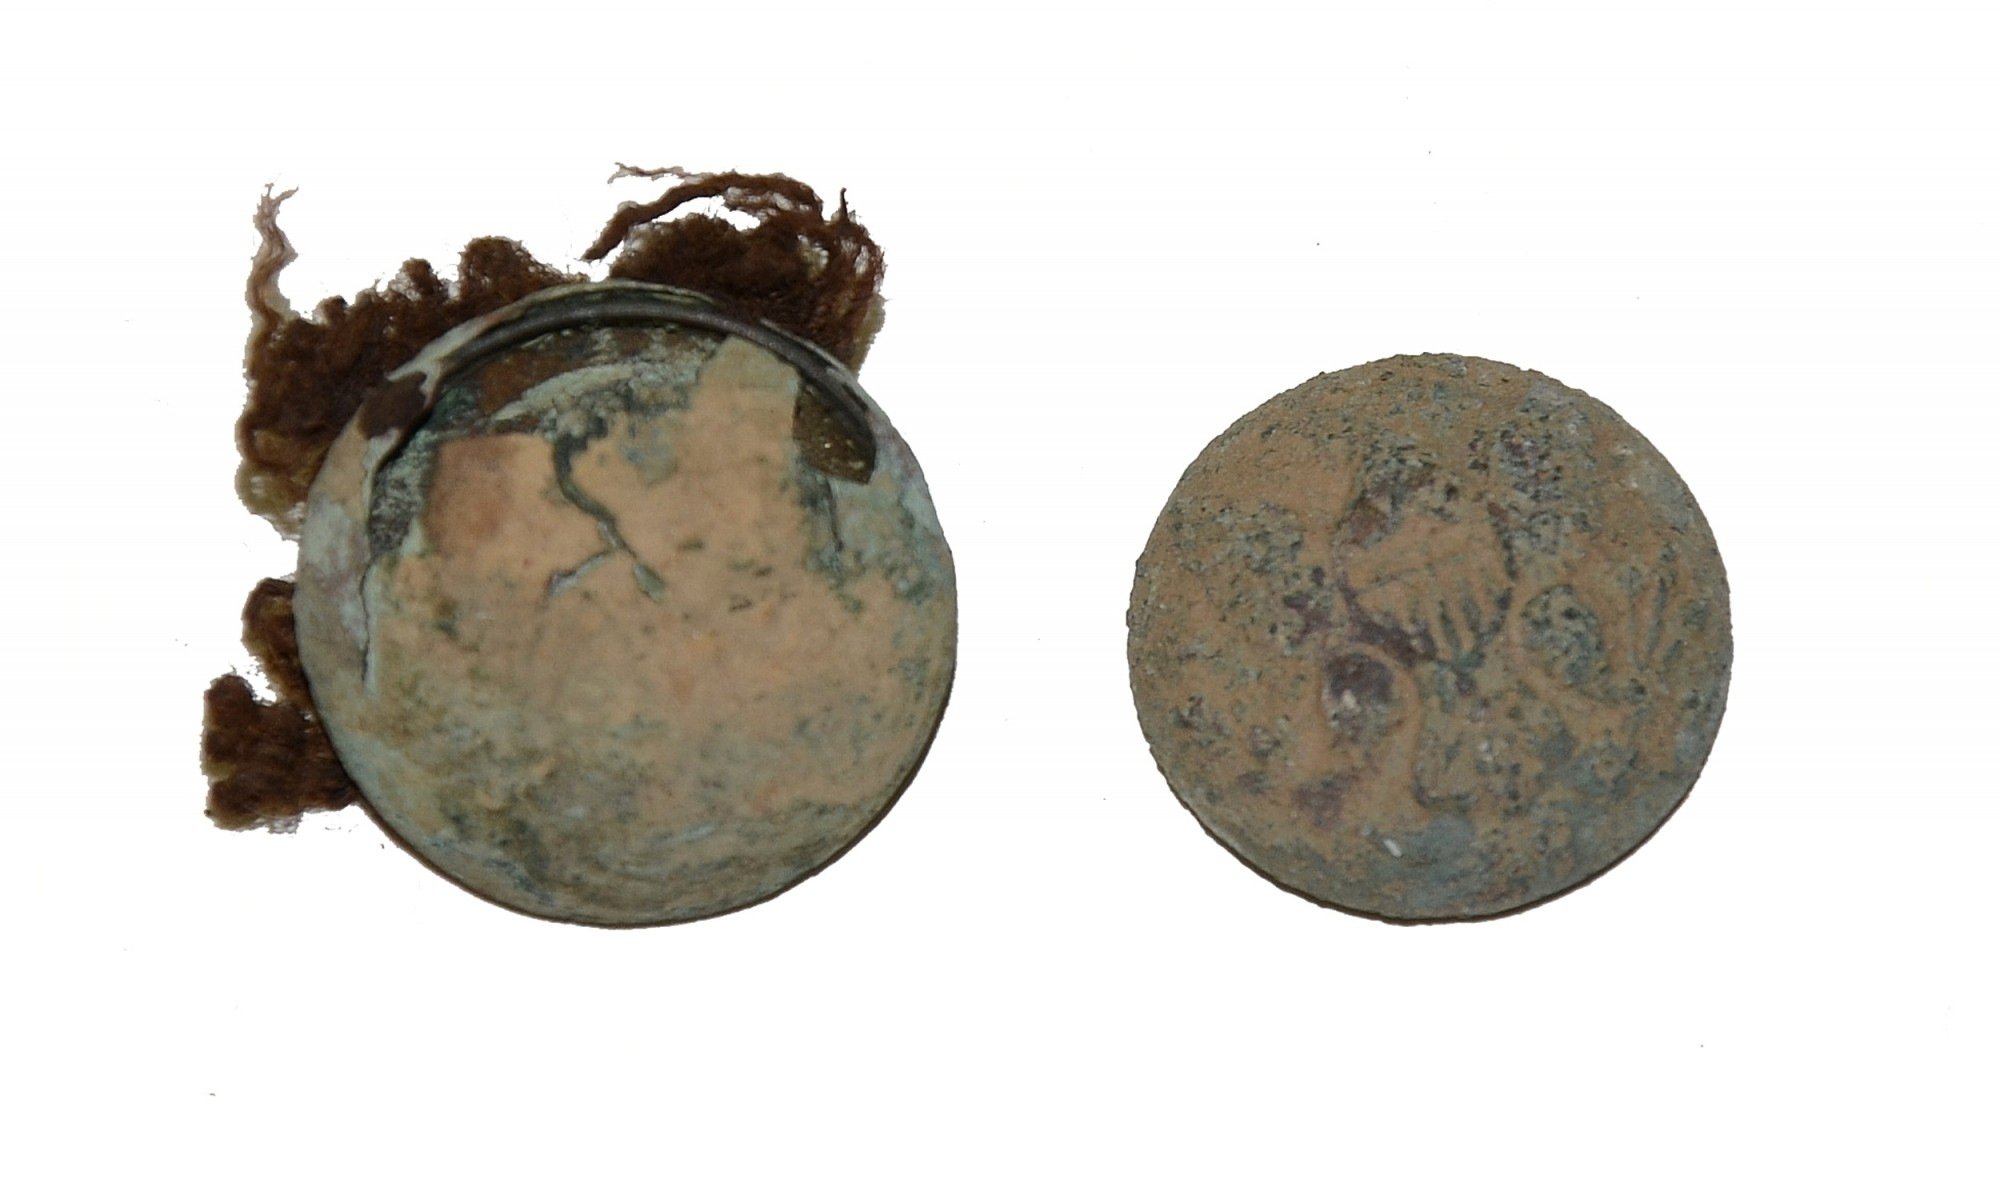 PAIR OF UNION ENLISTED EAGLE BUTTONS - GETTYSBURG